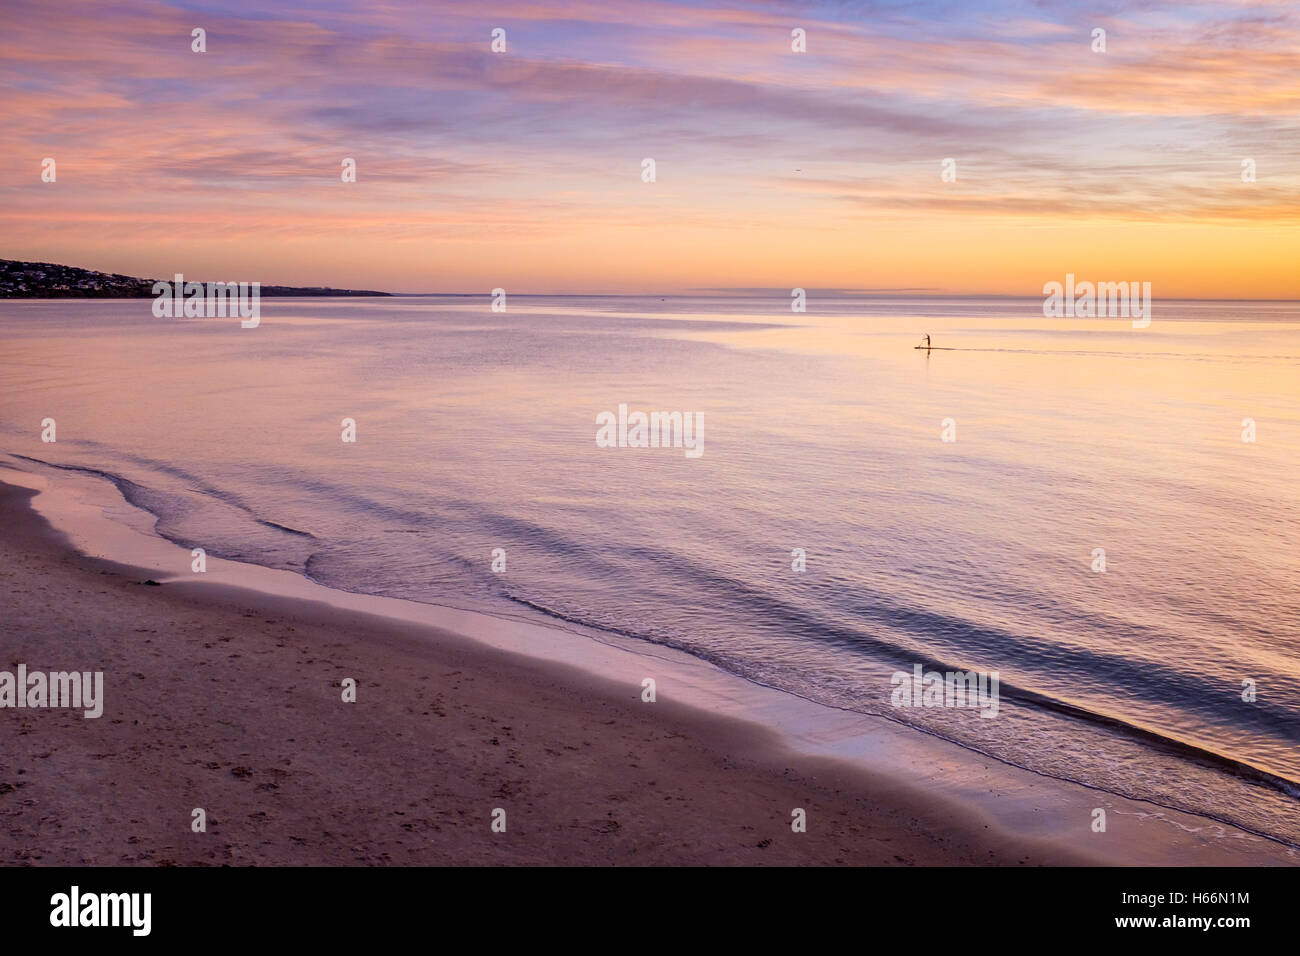 Sunset at Adelaide's Brighton beach, Adelaide Australia - Stock Image